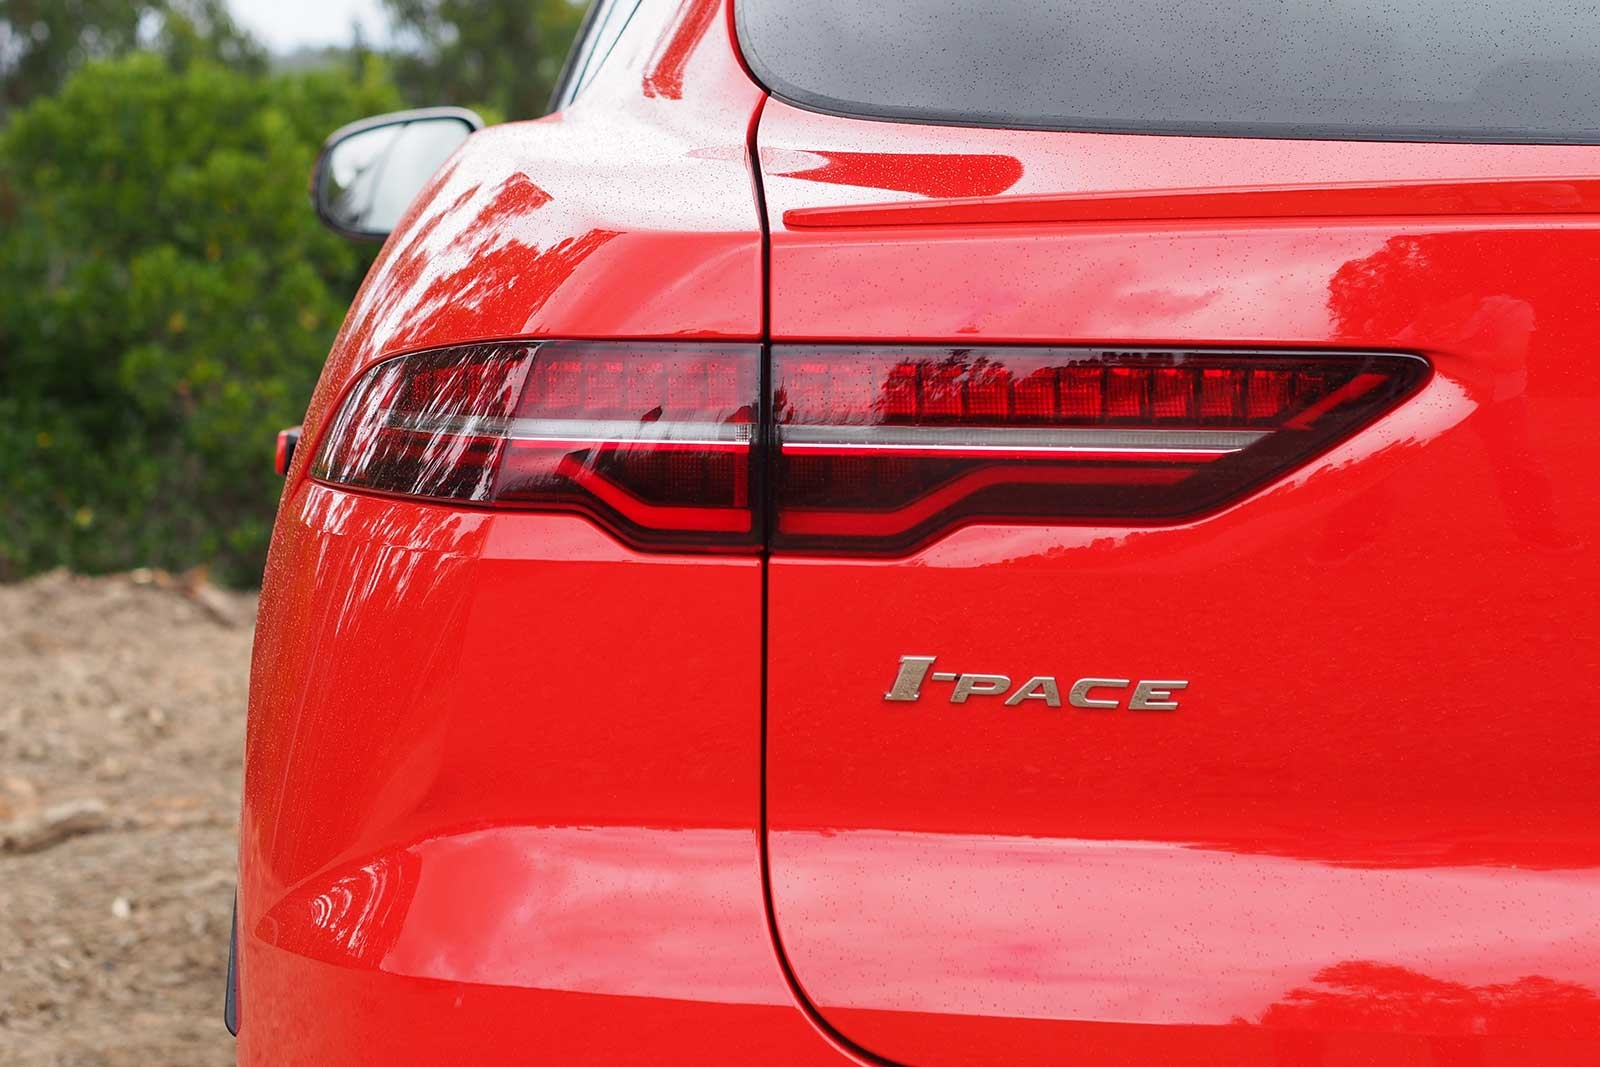 2019-Jaguar-I-Pace-Tail-Light